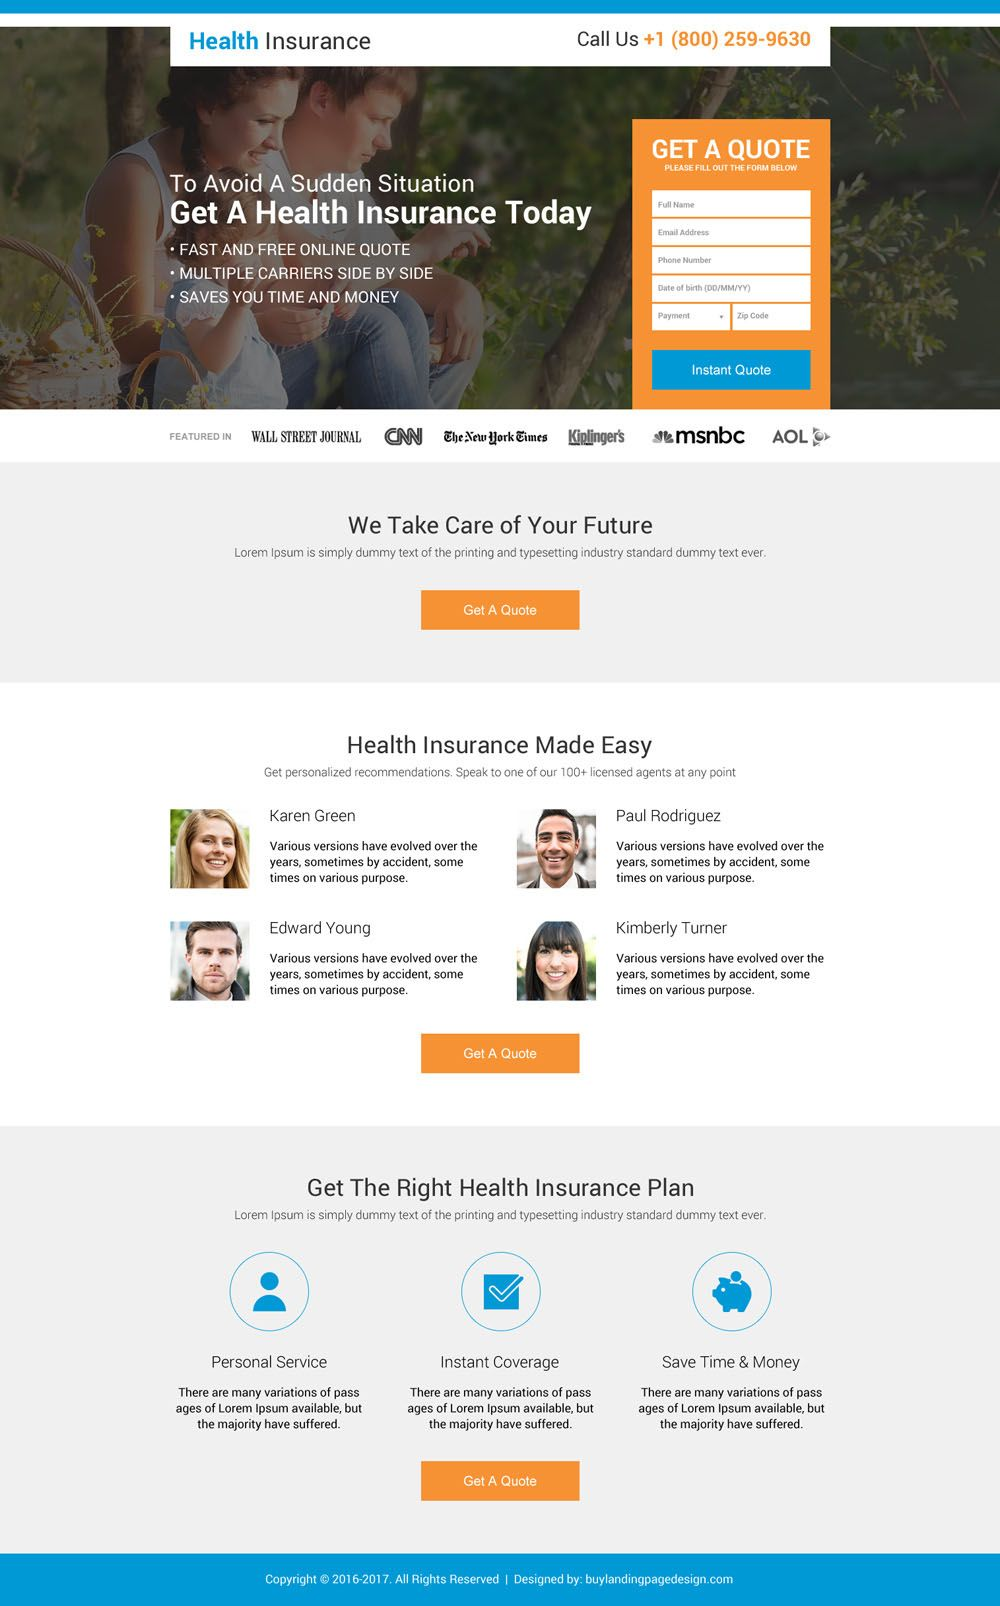 Free Health Insurance Quotes Health Insurance Instant Coverage Landing Page Design  Health